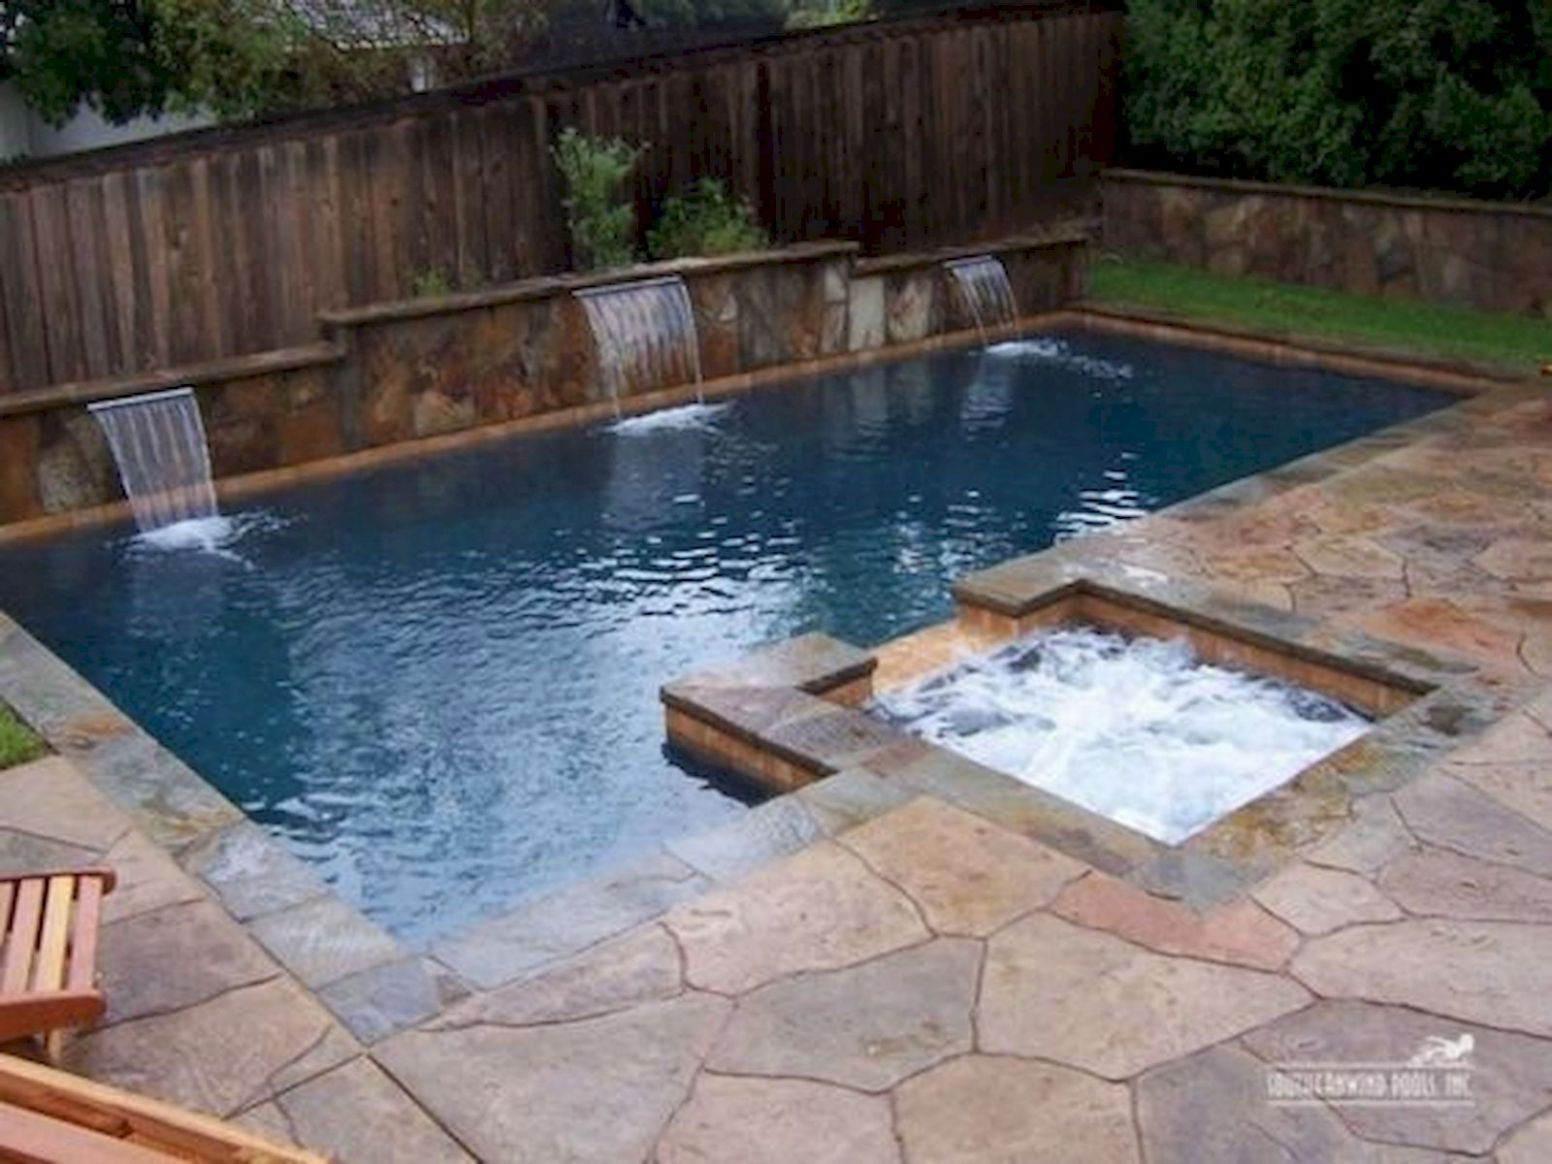 9 Awesome Backyard Swimming Pools Design Ideas - house9.com